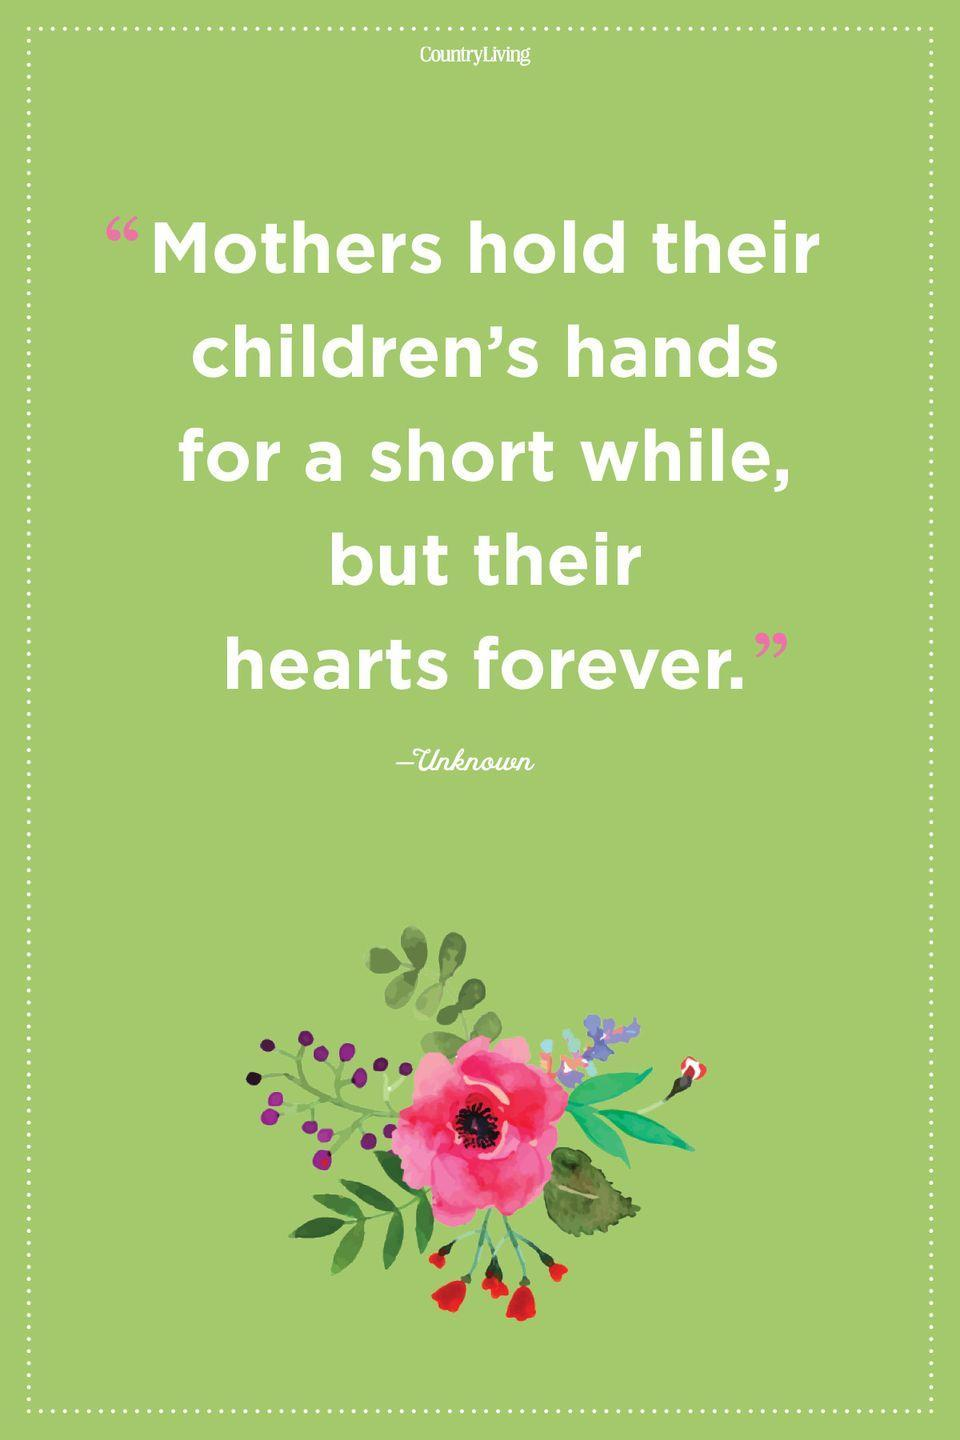 "<p>""Mothers hold their children's hands for a short while, but their hearts forever.""</p>"